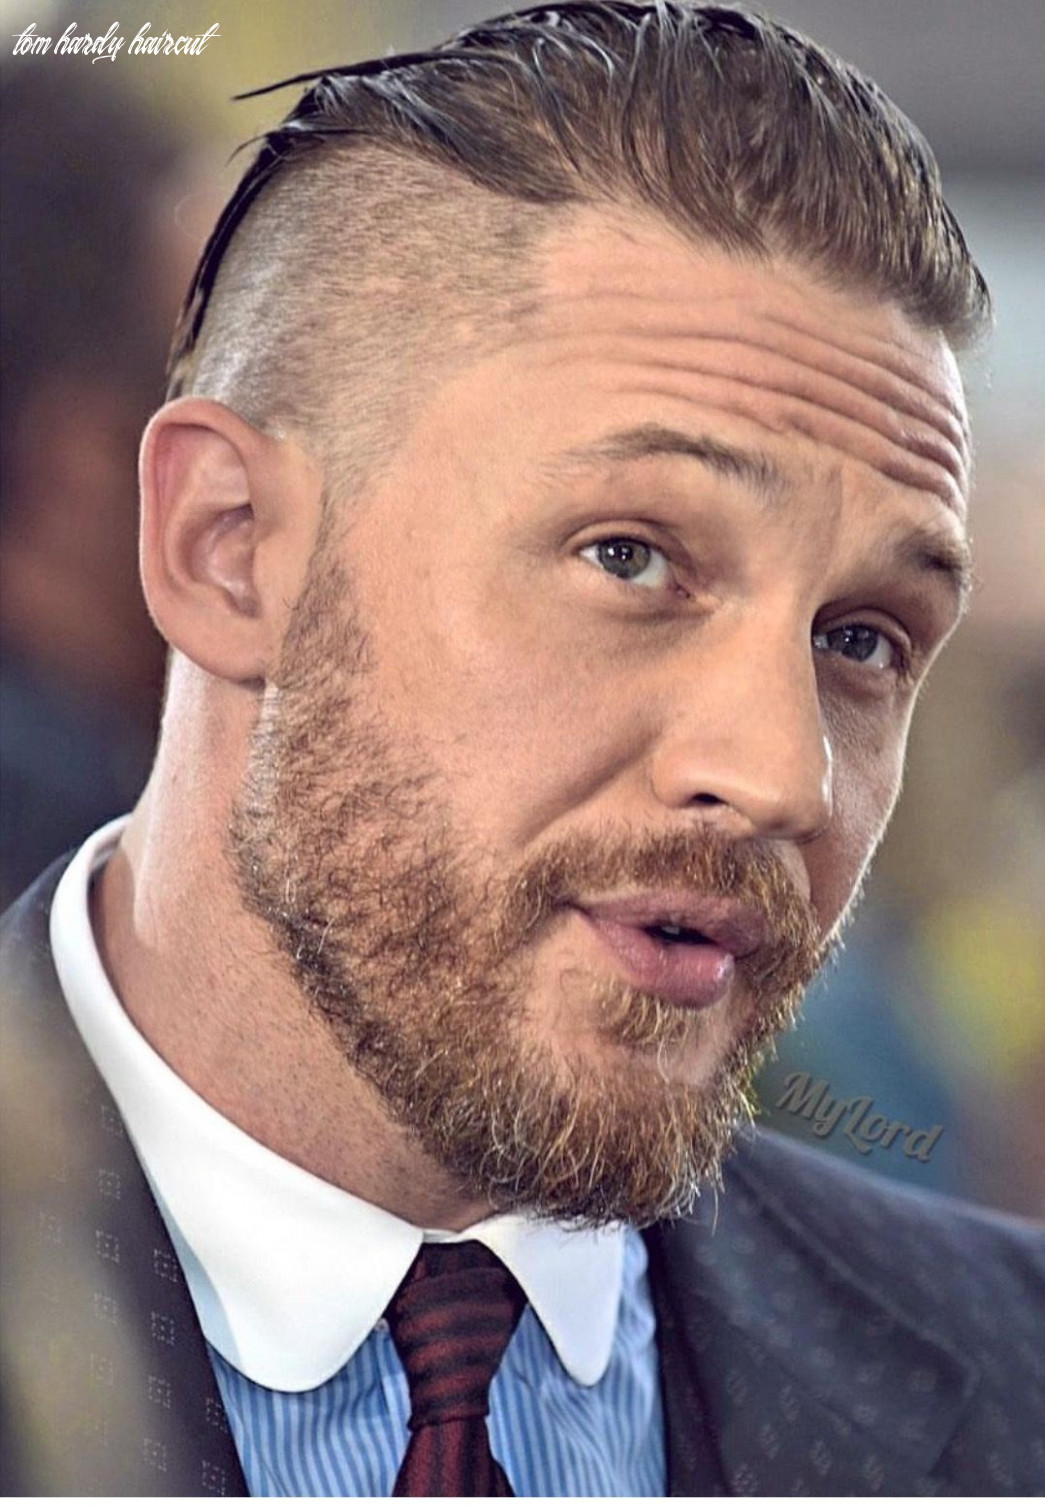 Tom hardy💋💋 (with images) | tom hardy haircut, tom hardy beard